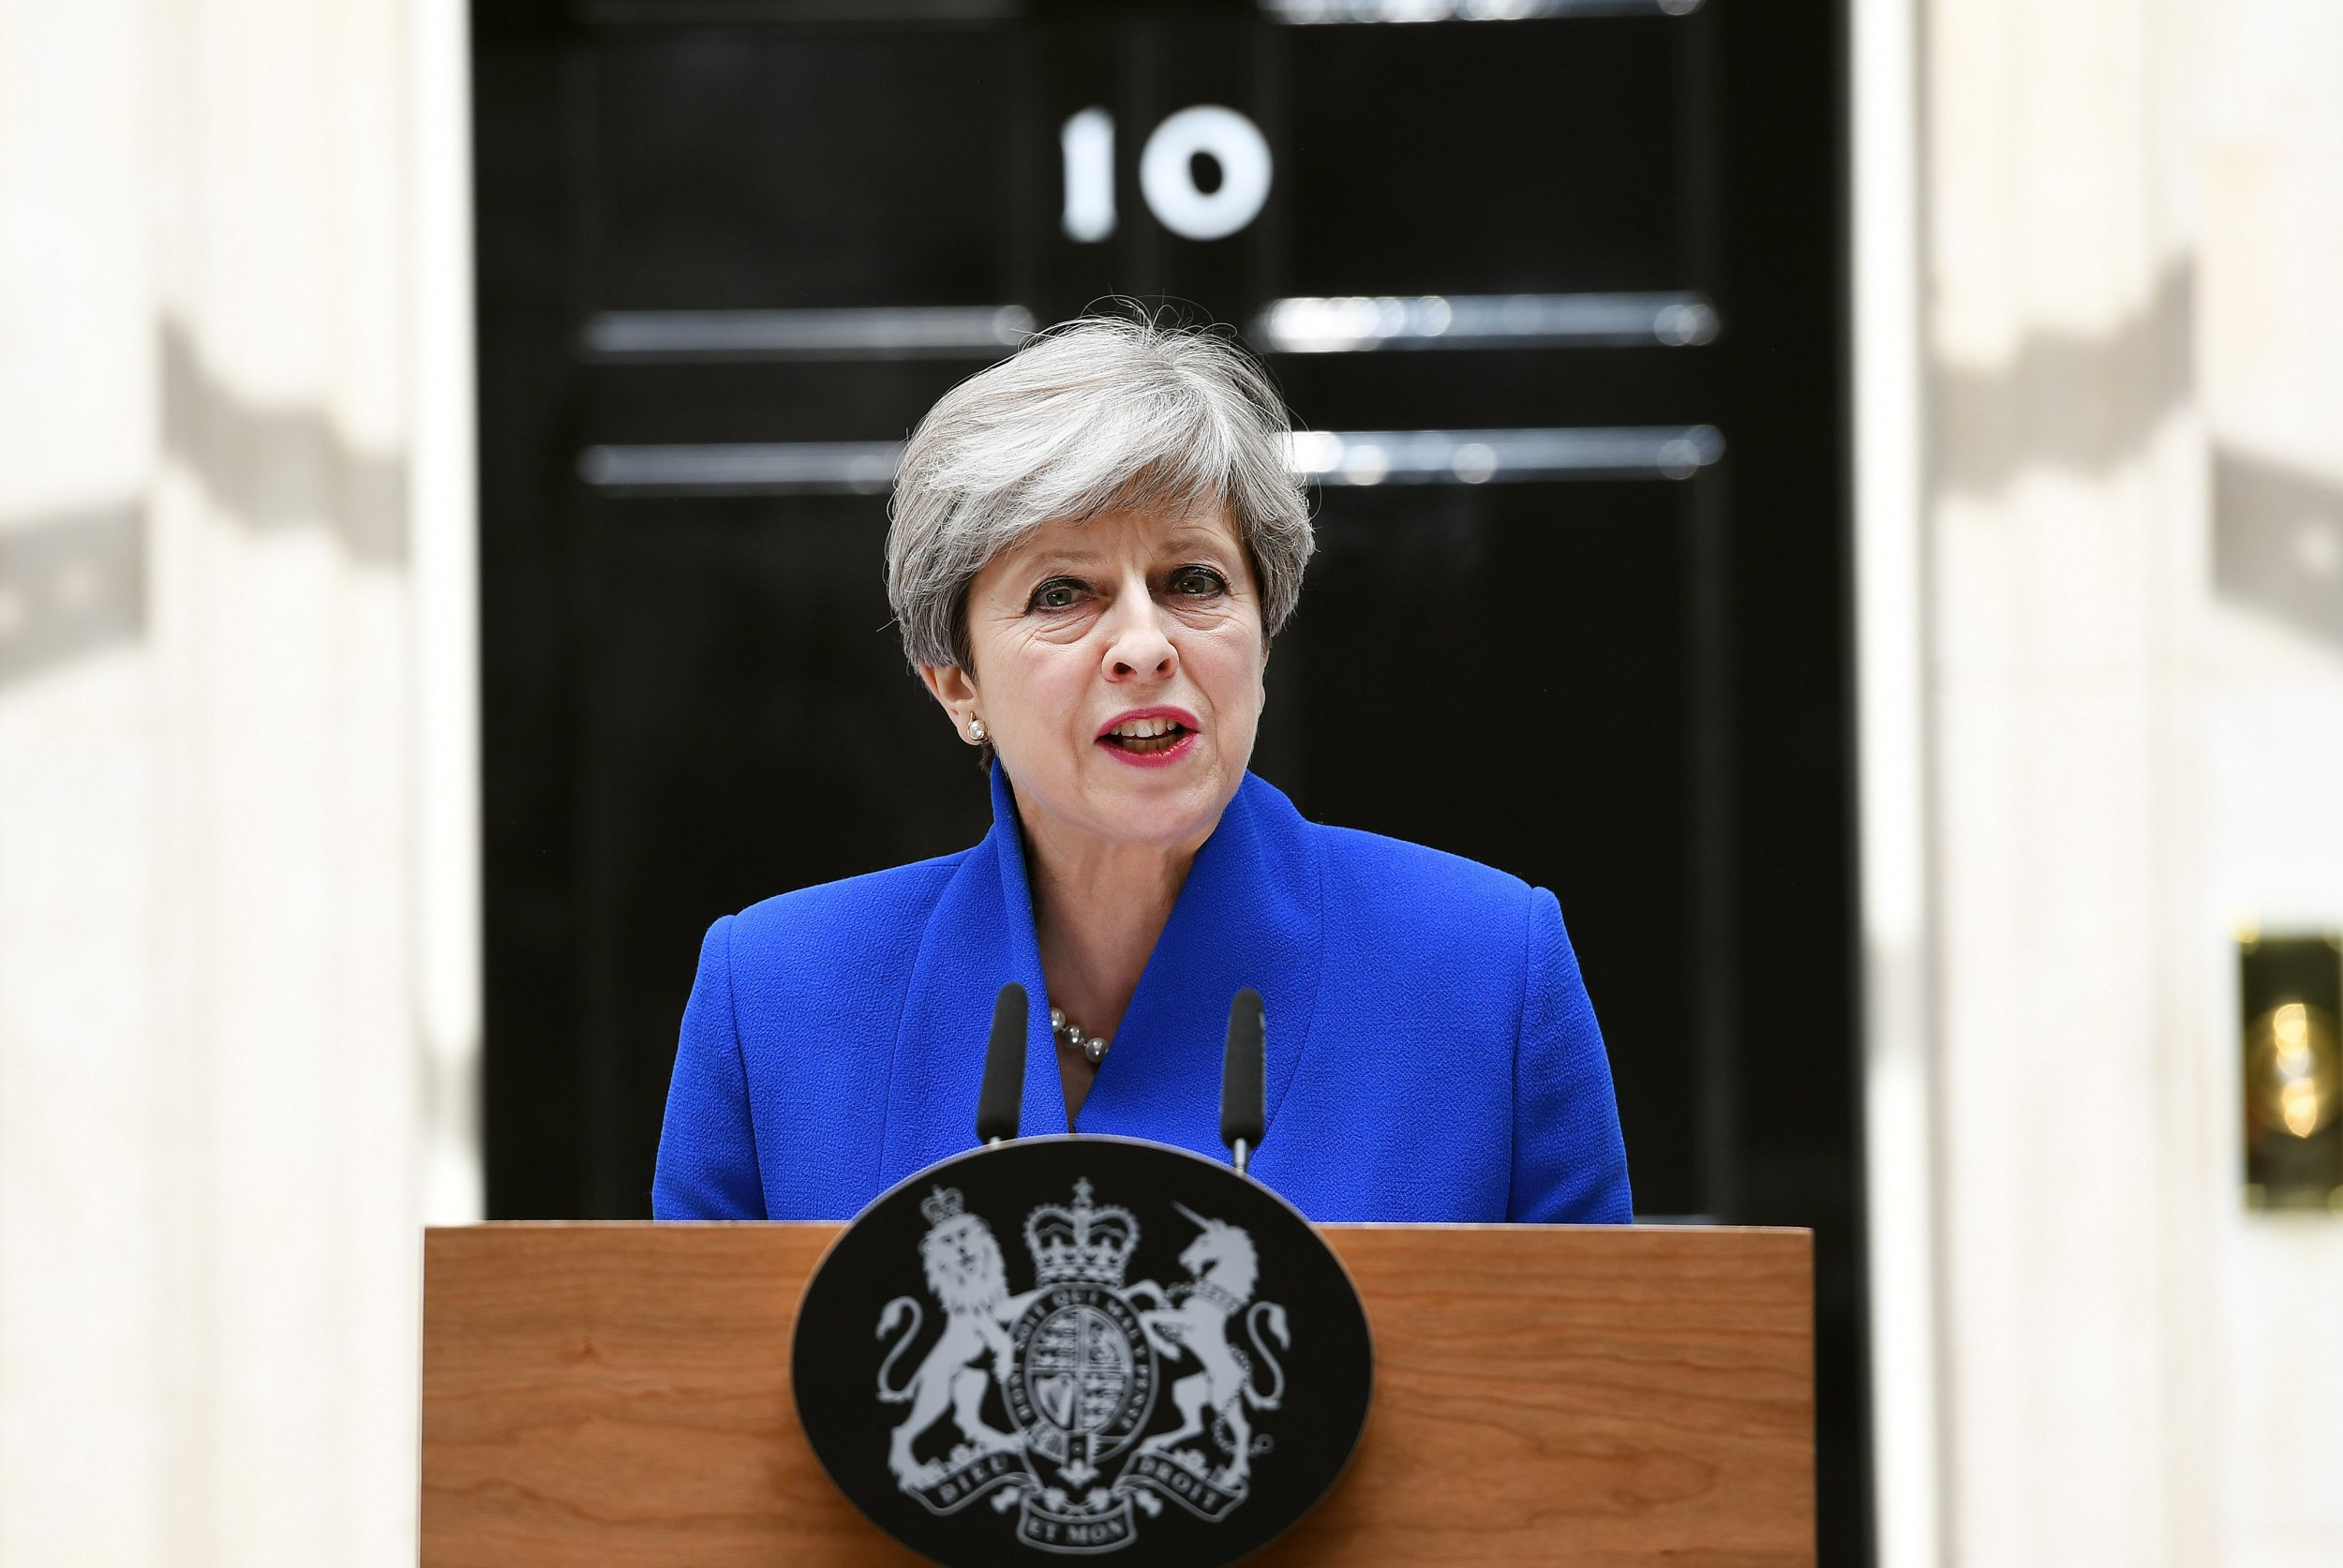 Theresa May 'wanted to drop strong and stable slogan because it made her look stupid'